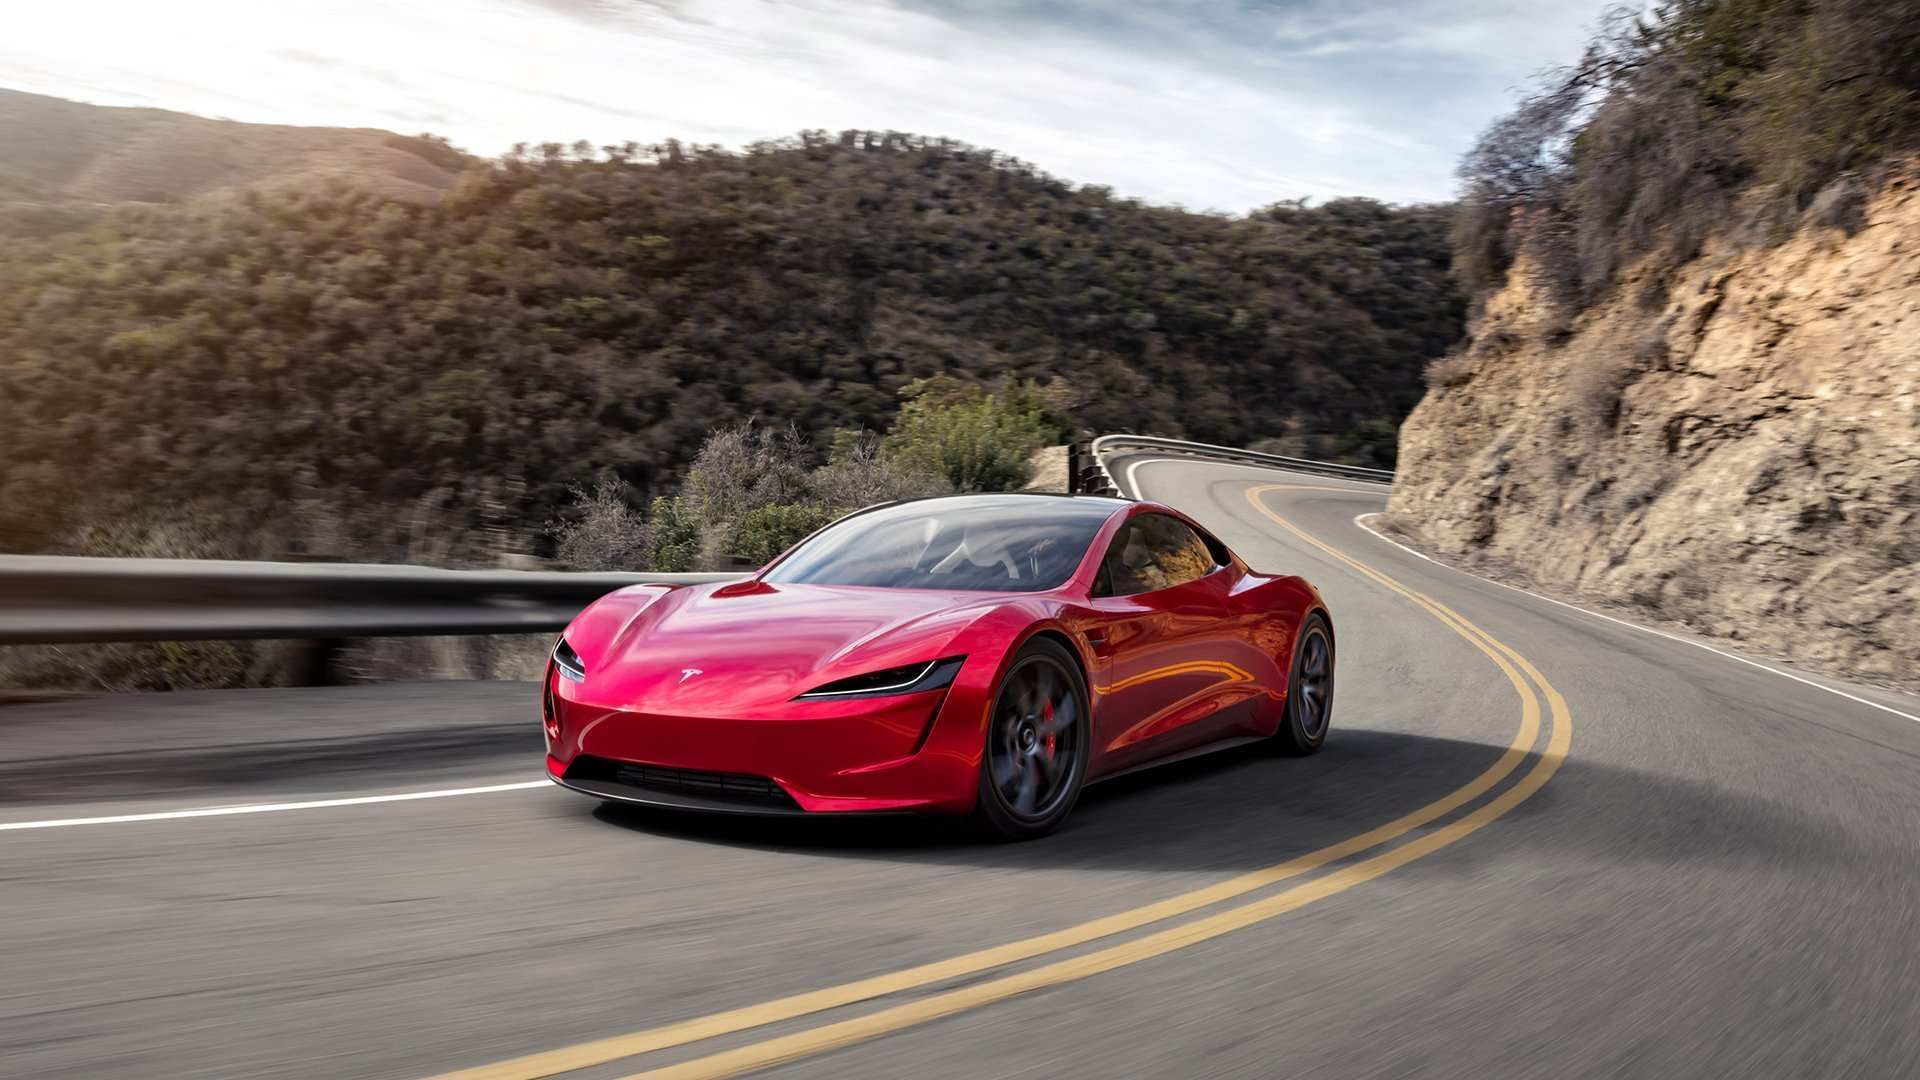 76 All New 2020 Tesla Roadster Quarter Mile Pricing by 2020 Tesla Roadster Quarter Mile